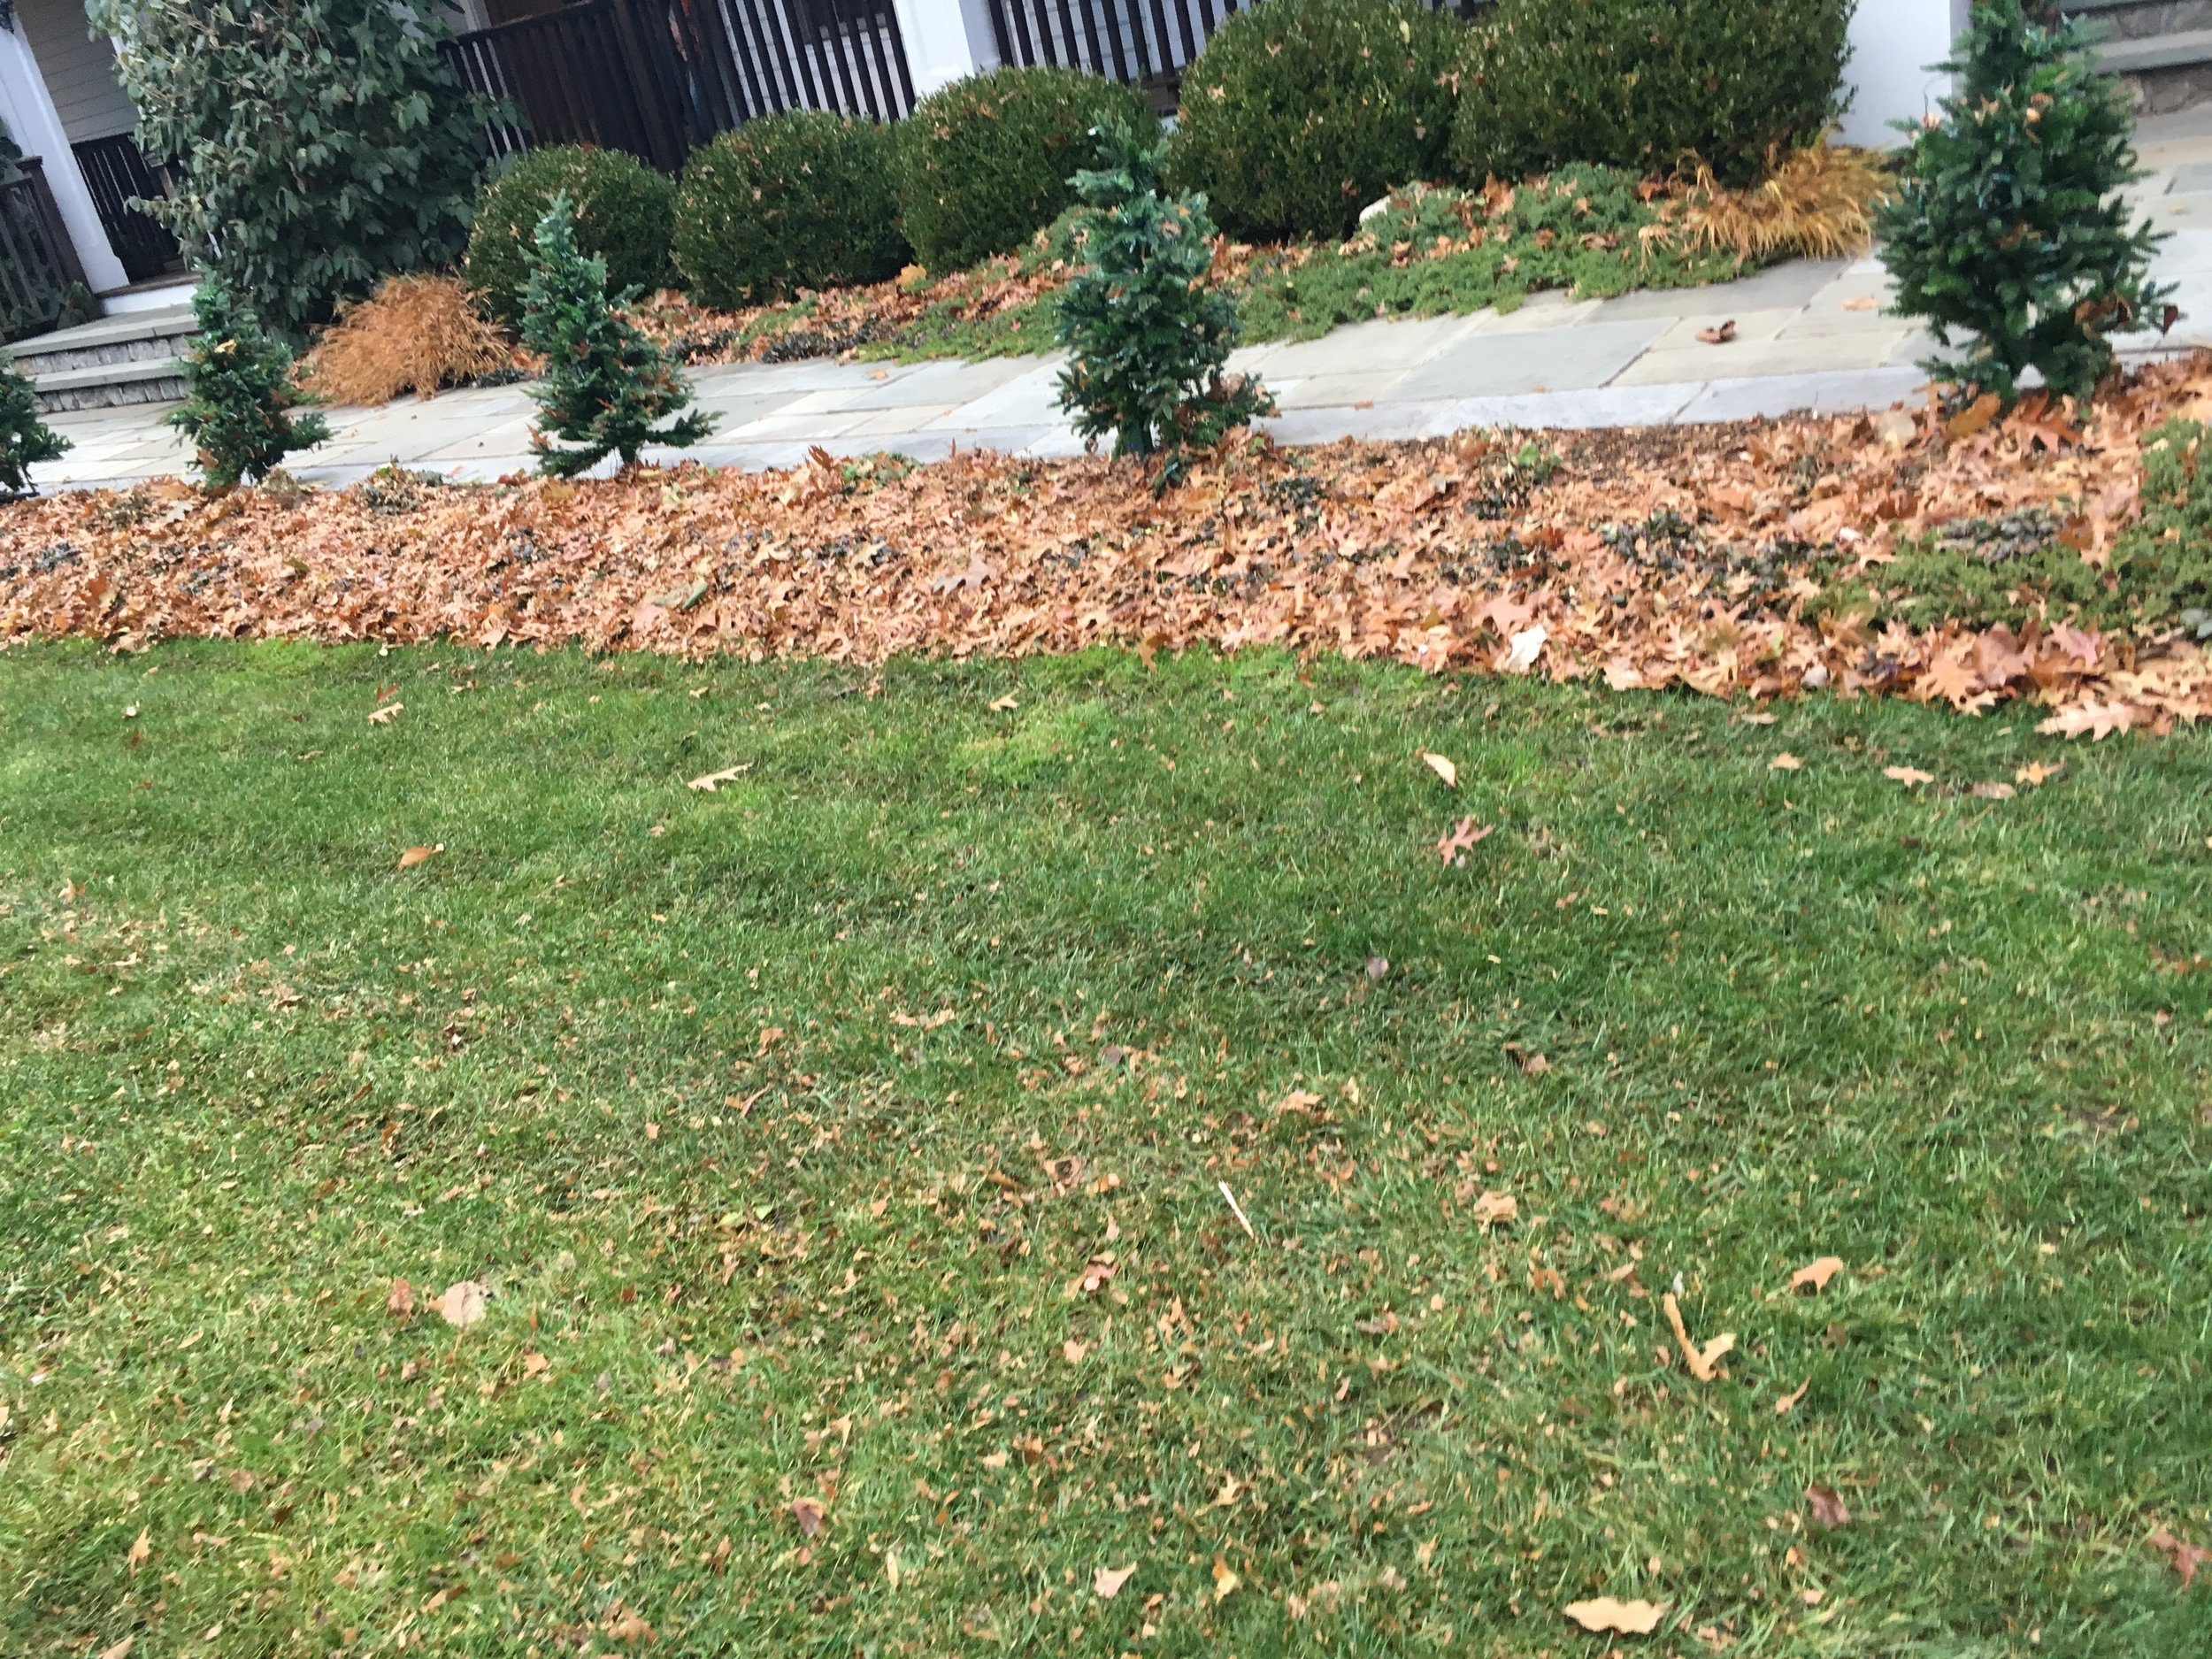 Mulched leaves fertilize lawns and flowering beds.